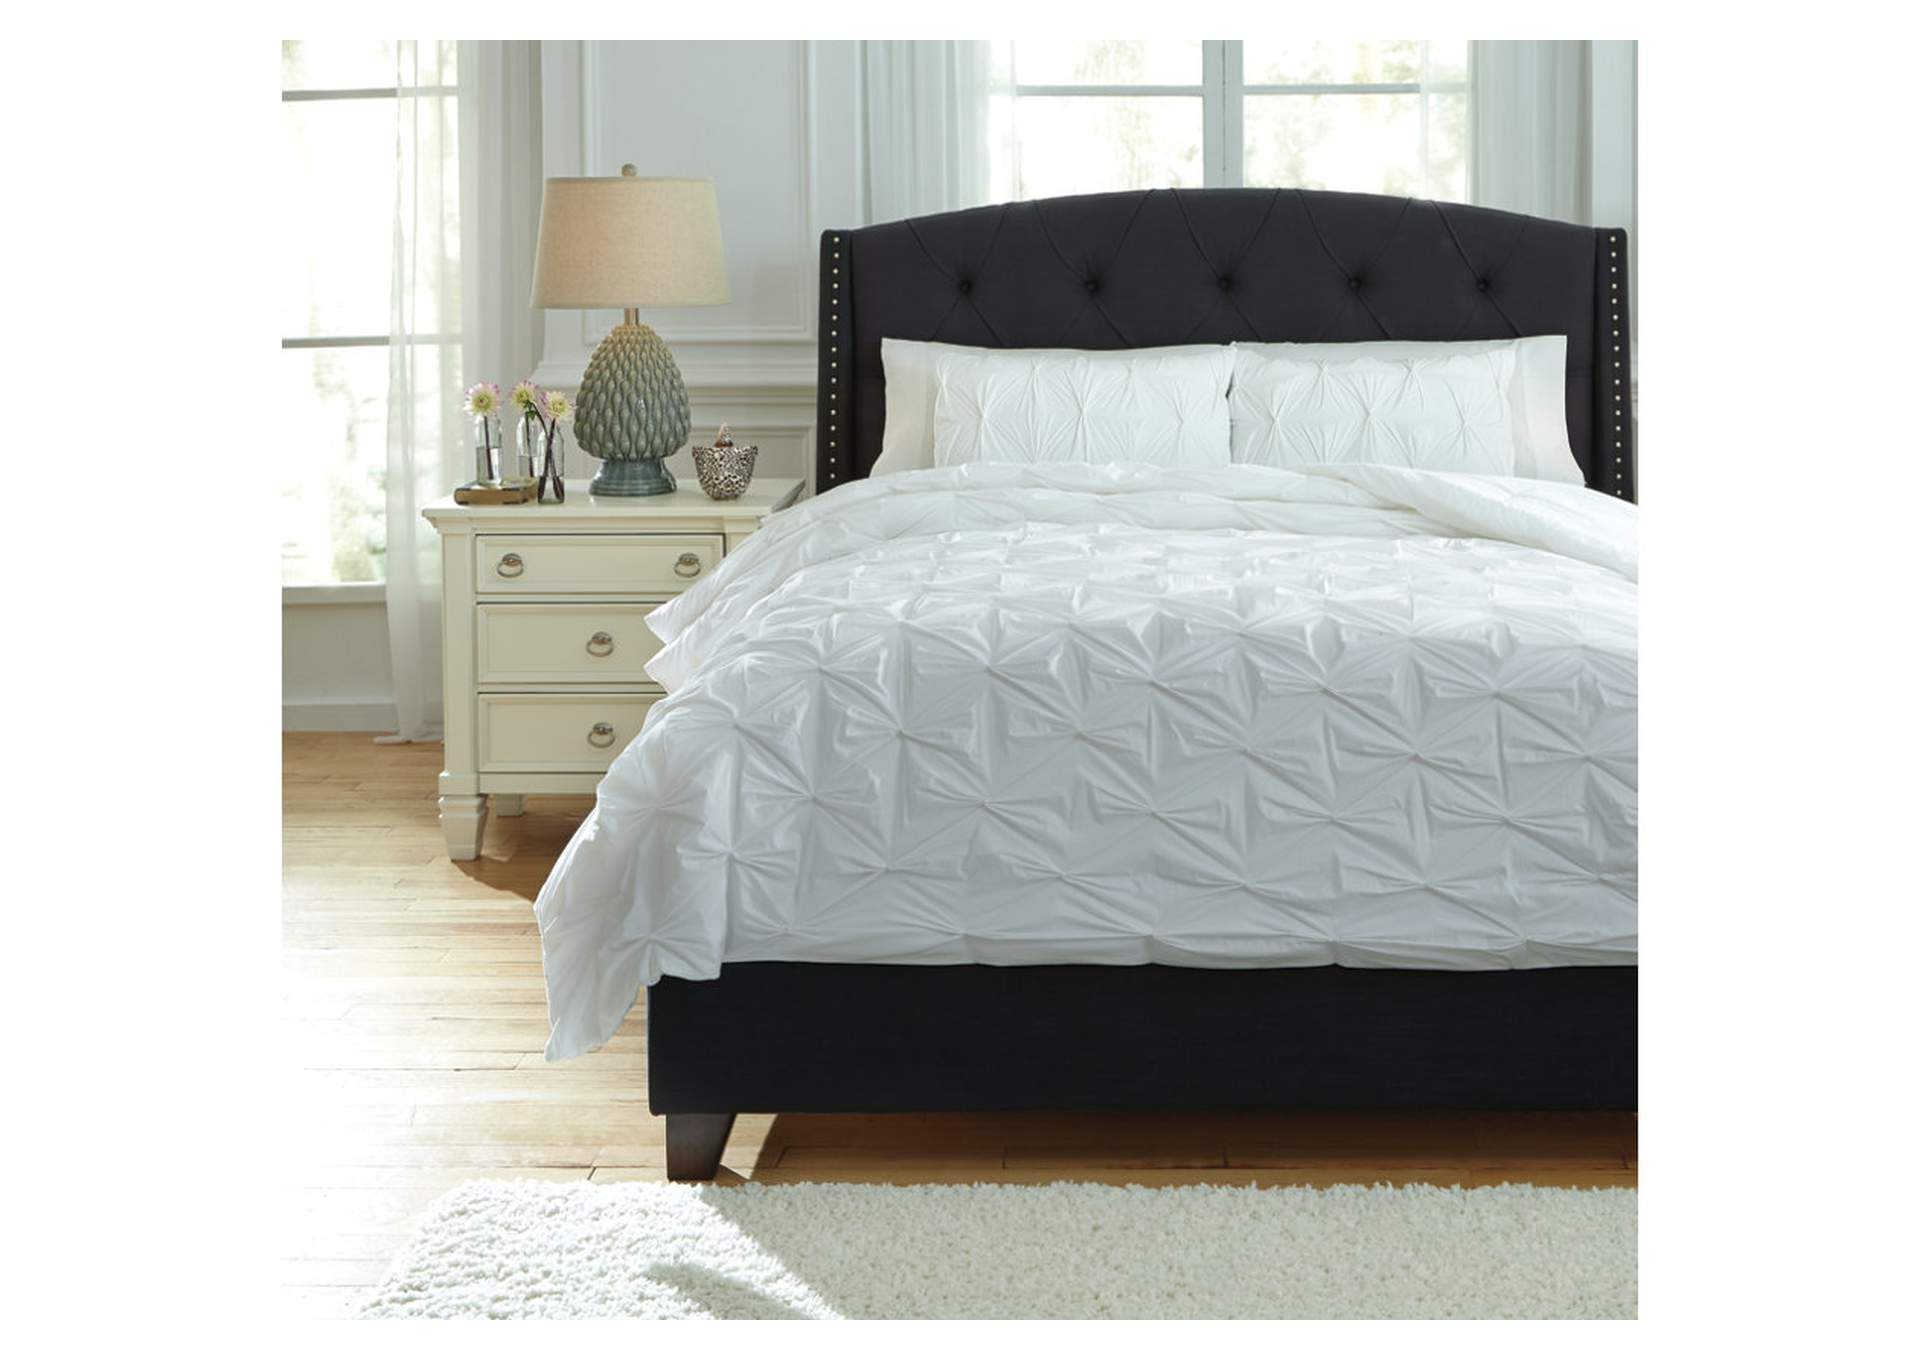 Rimy White King Comforter Set,Direct To Consumer Express